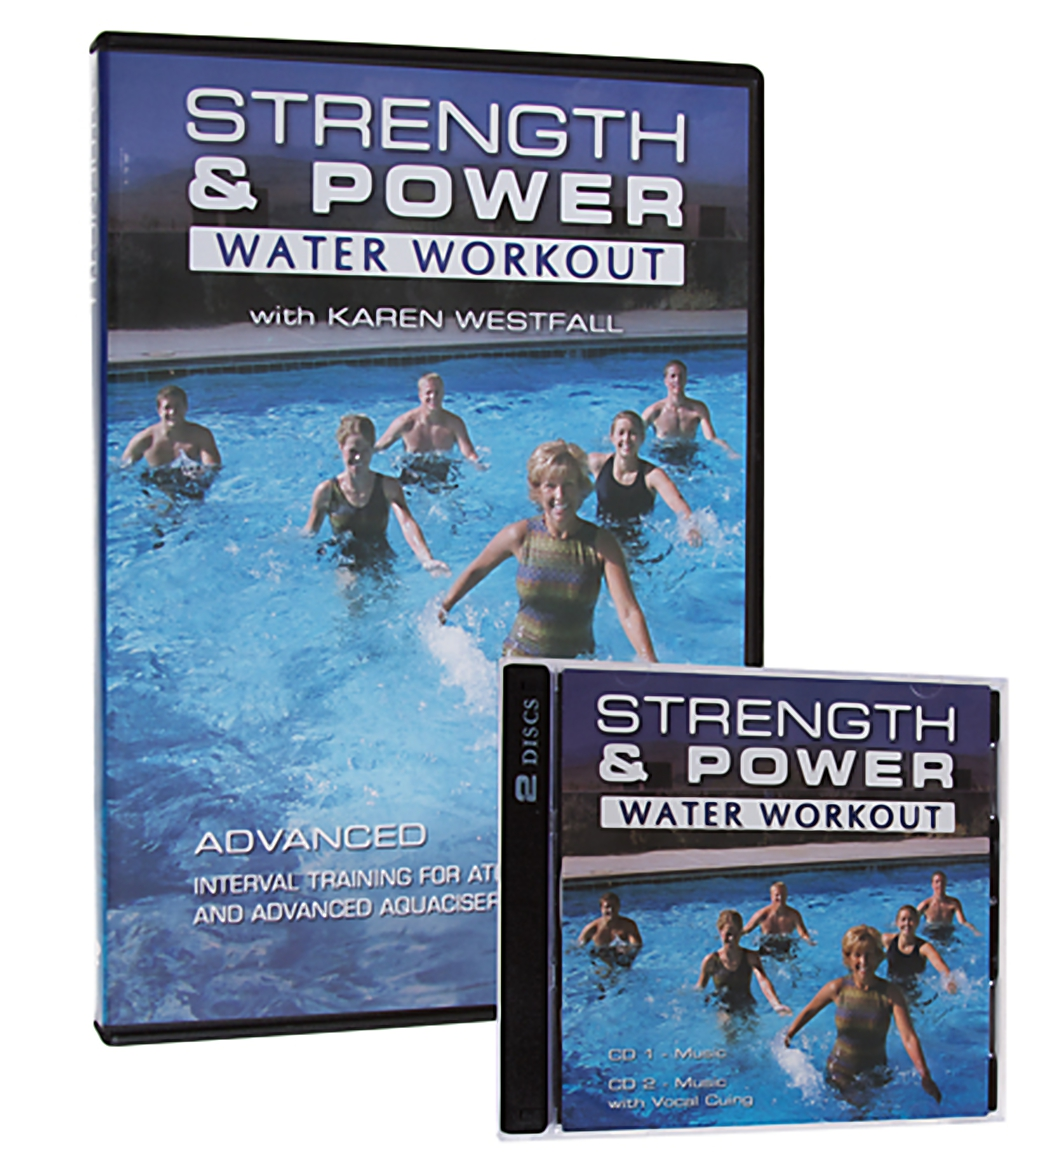 Discovering The Answers To Valuable Products Of Strength Training: Water Works The Strength And Power Water Workout DVD + CD